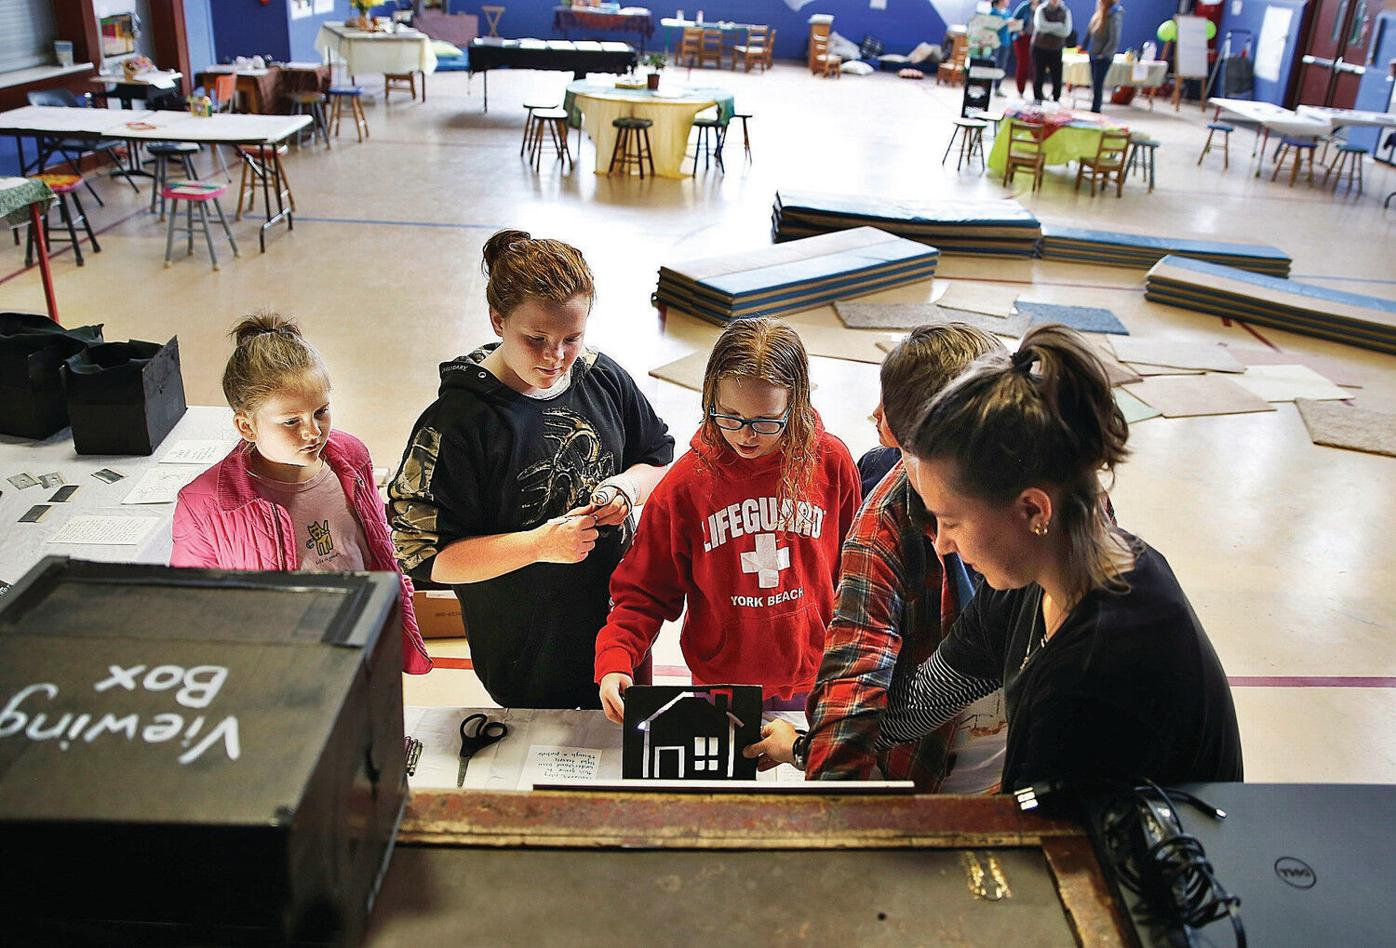 School gym becomes pop-up science museum